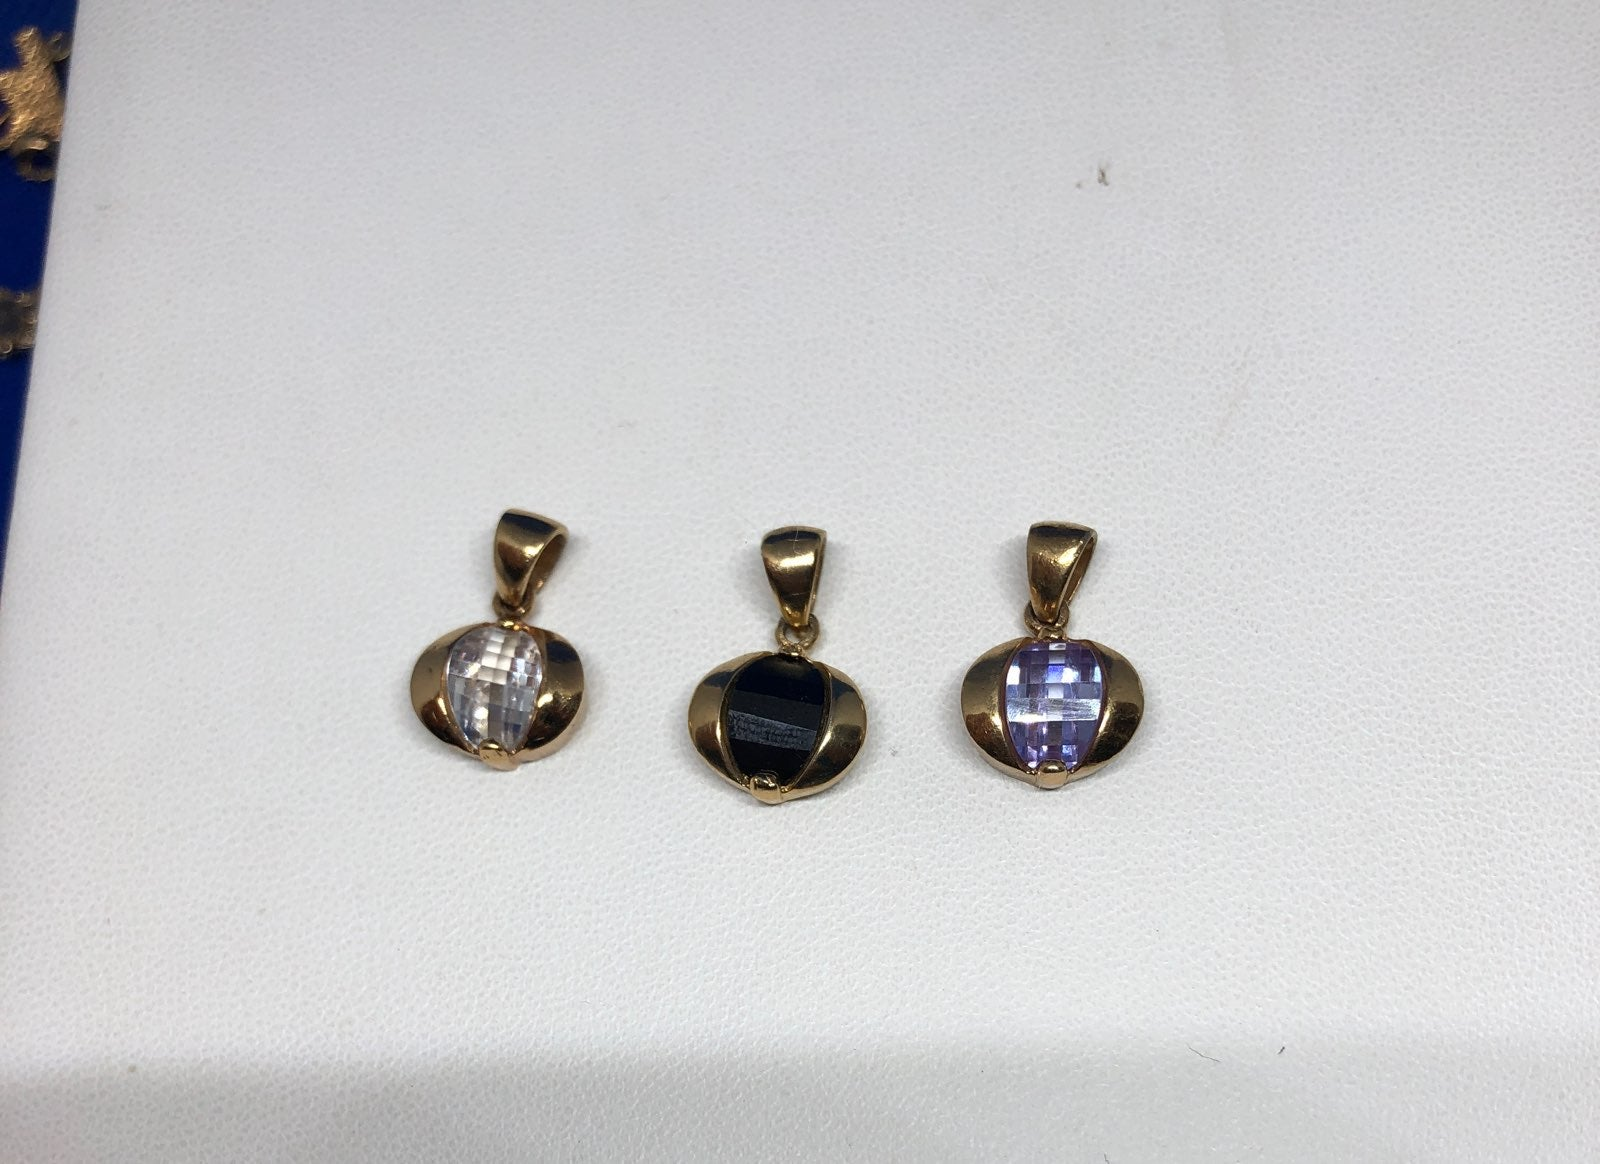 CUbic Zirconia Charms/GP